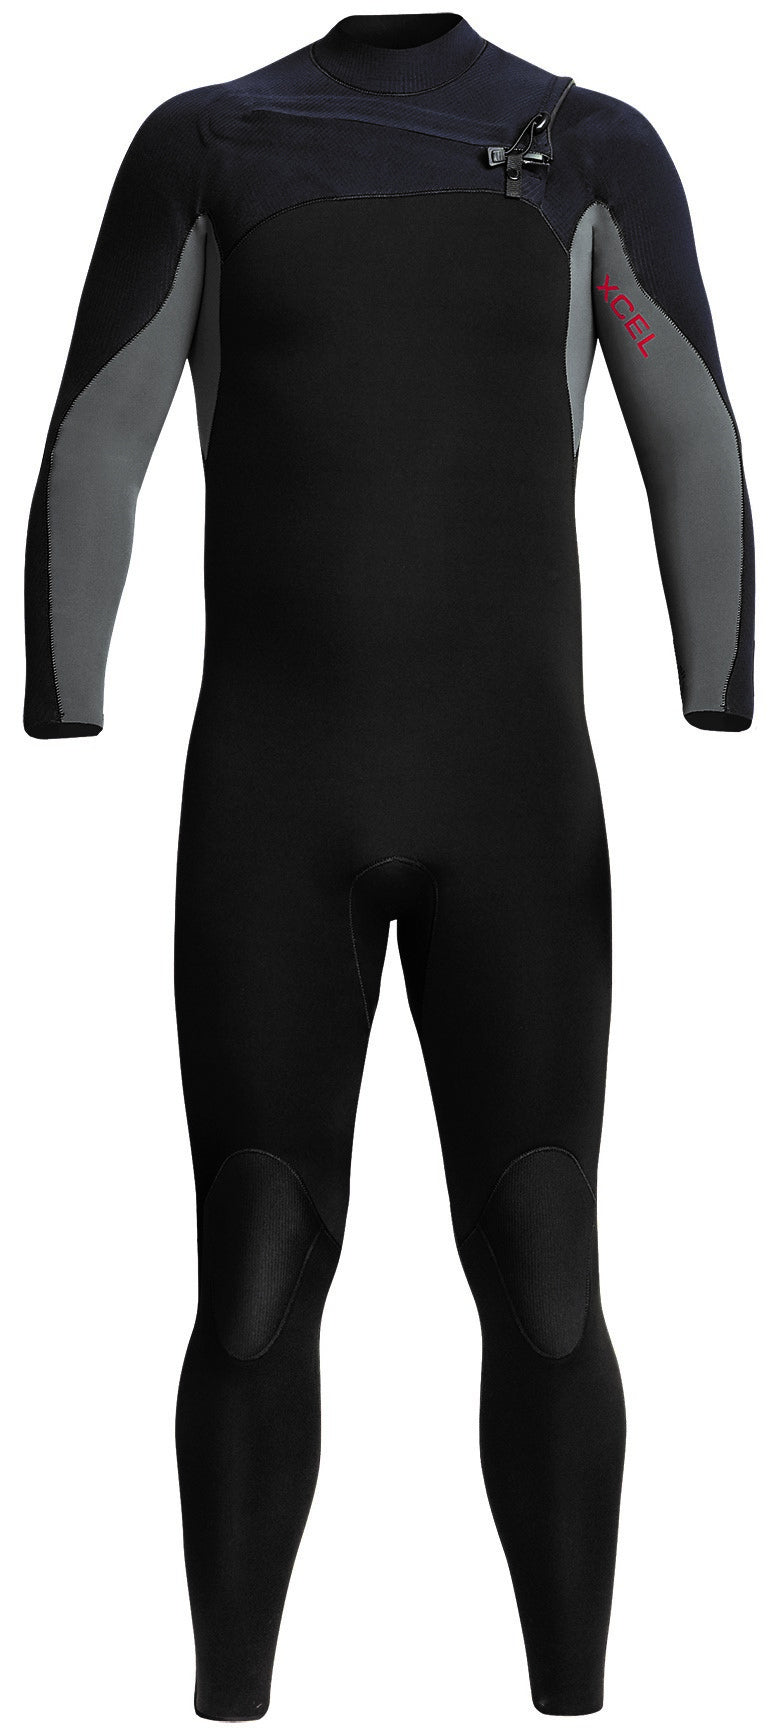 MEN'S XCEL PHOENIX 3/2 FULLSUIT CHEST ZIP - Board Store XcelWetsuits